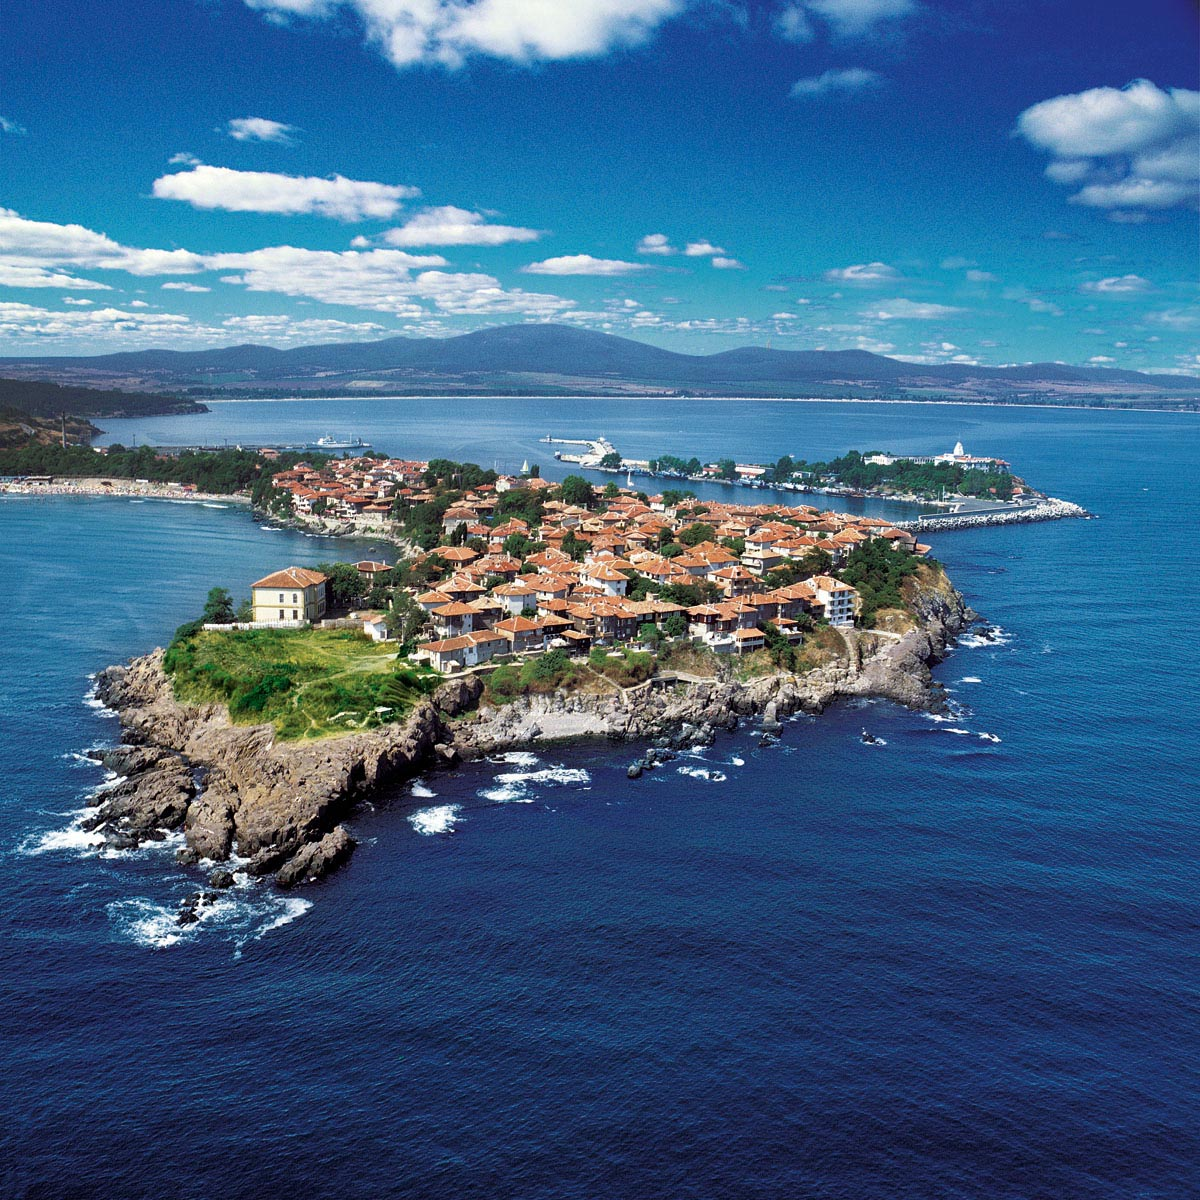 sozopol-bulgaria-optimalrentals-villas-yachts-apartments-booking